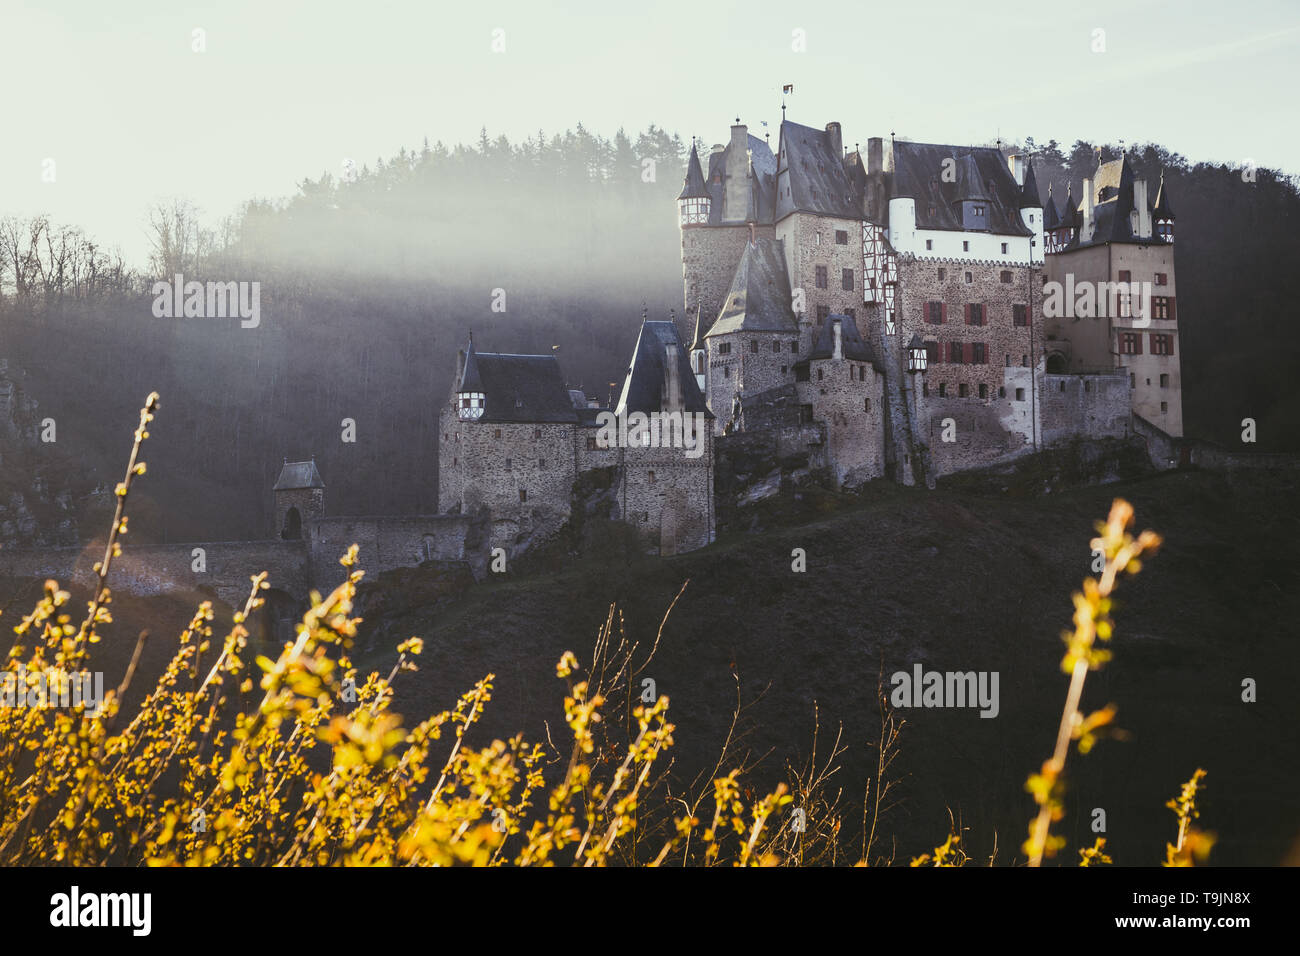 Beautiful view of famous Eltz Castle in scenic golden morning light at sunrise in fall with retro vintage VSCO style filter effect, Wierschem, Rheinla - Stock Image